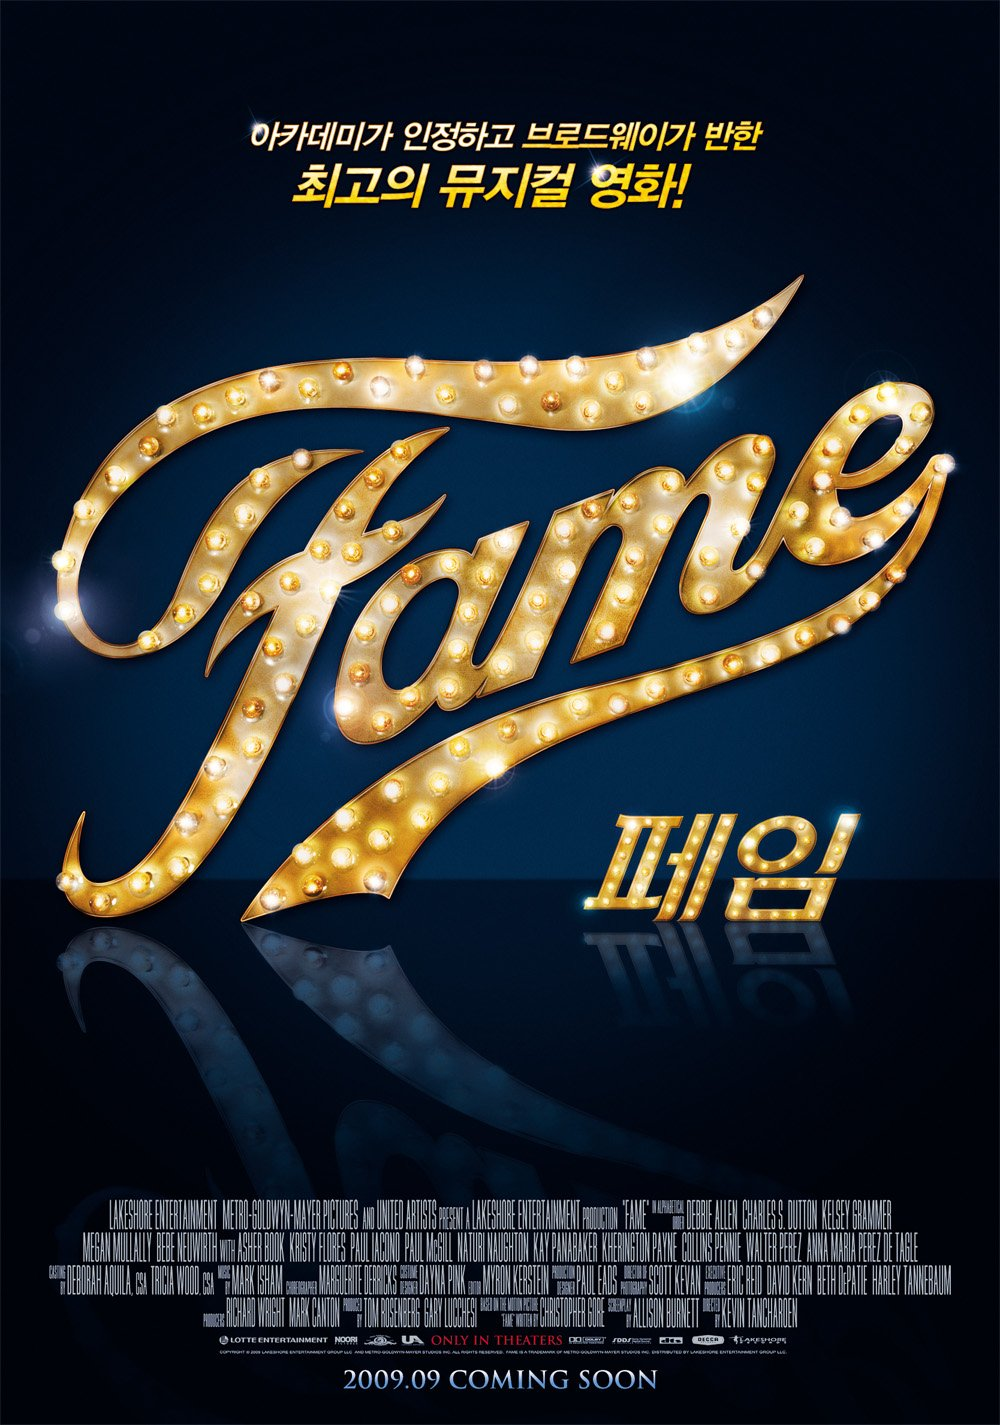 fame 2009 poster. Black Bedroom Furniture Sets. Home Design Ideas